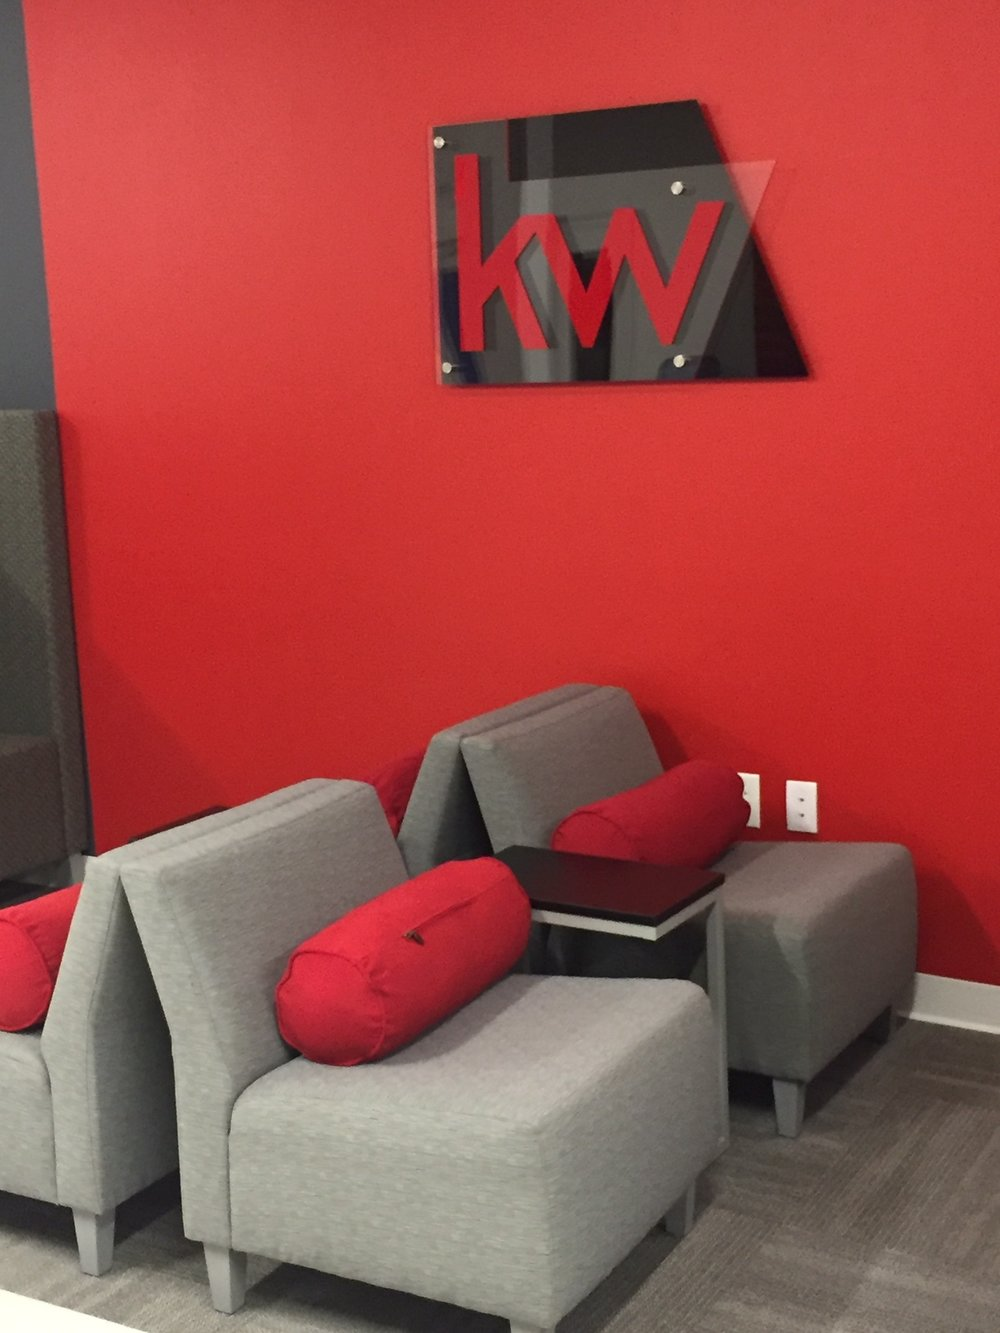 Corporate Displays - Let us use your logo to create art for your office installations.